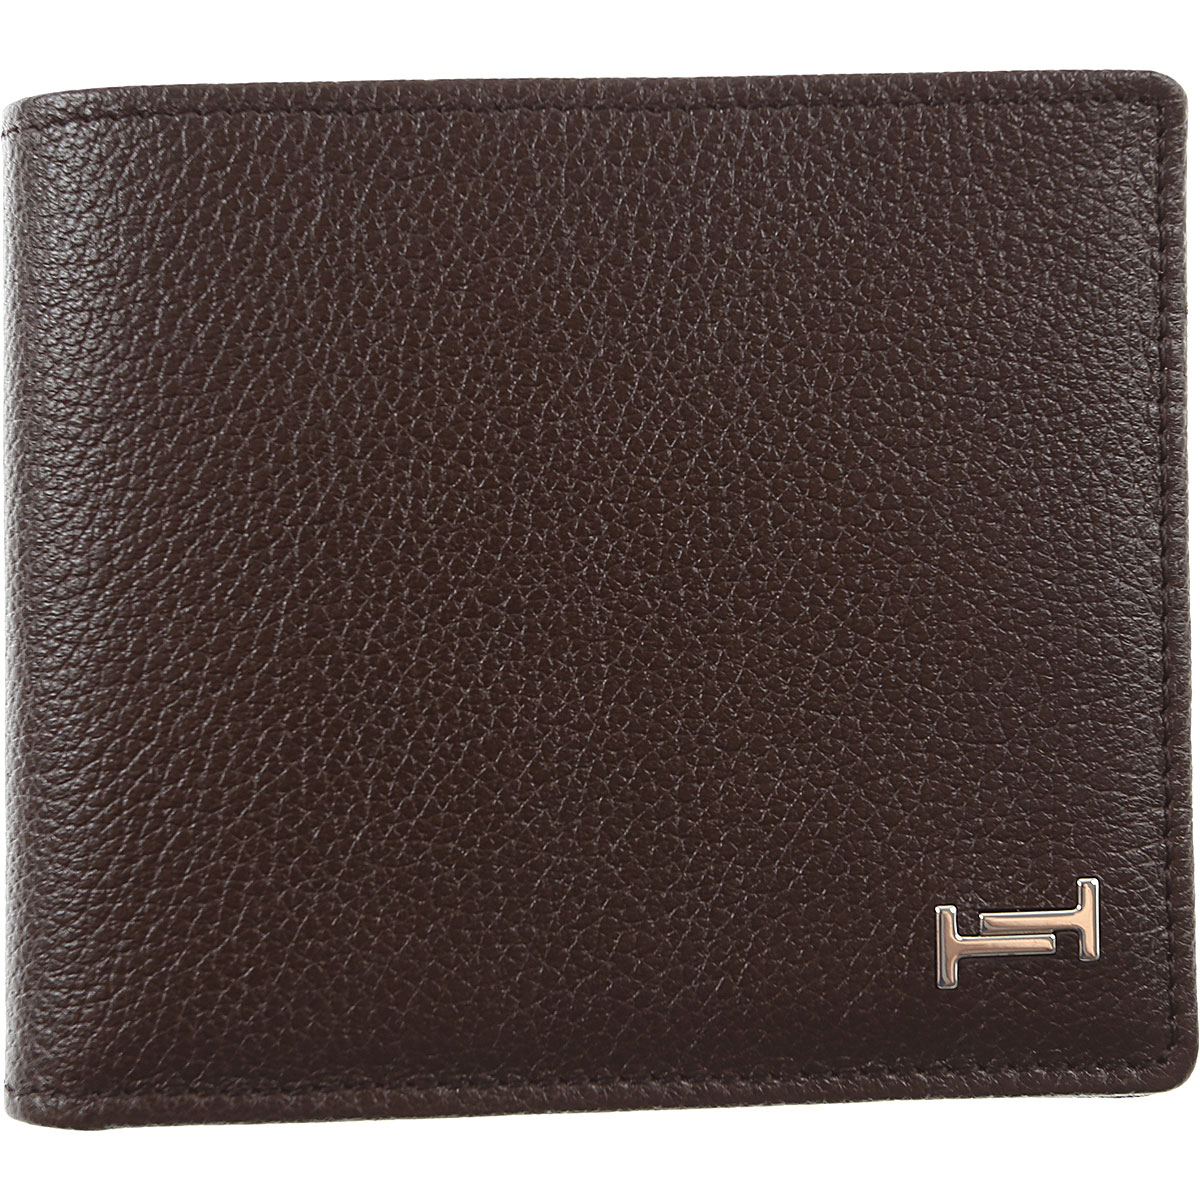 Tods Mens Wallets Brown USA - GOOFASH